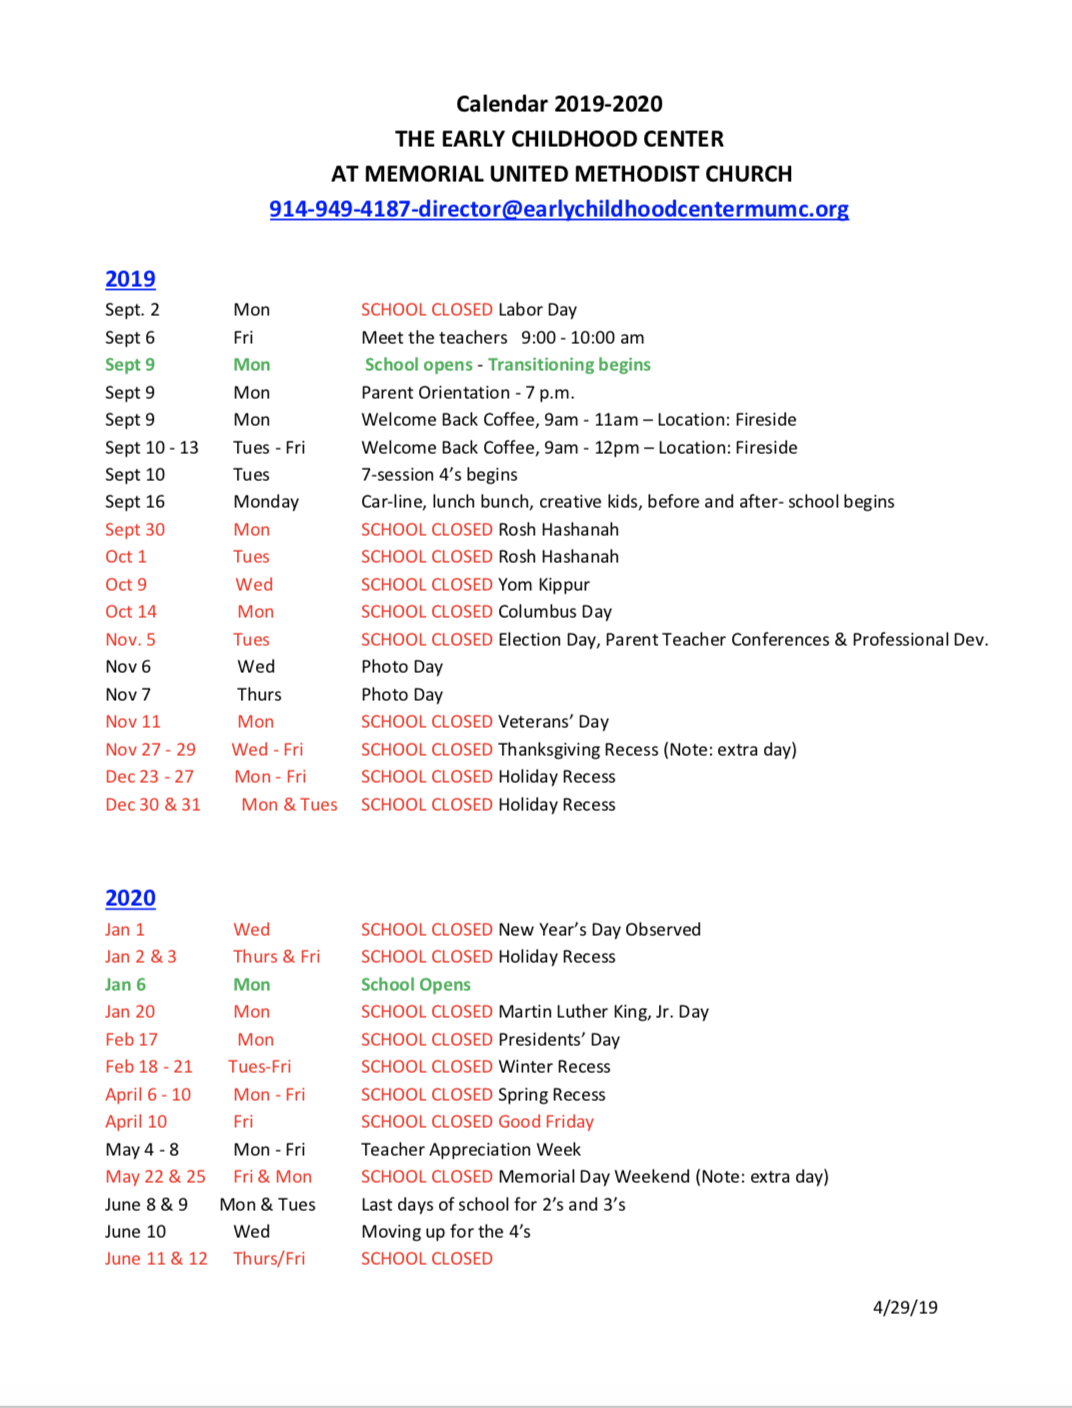 School Calendar - Early Childhood Center At Memorial United